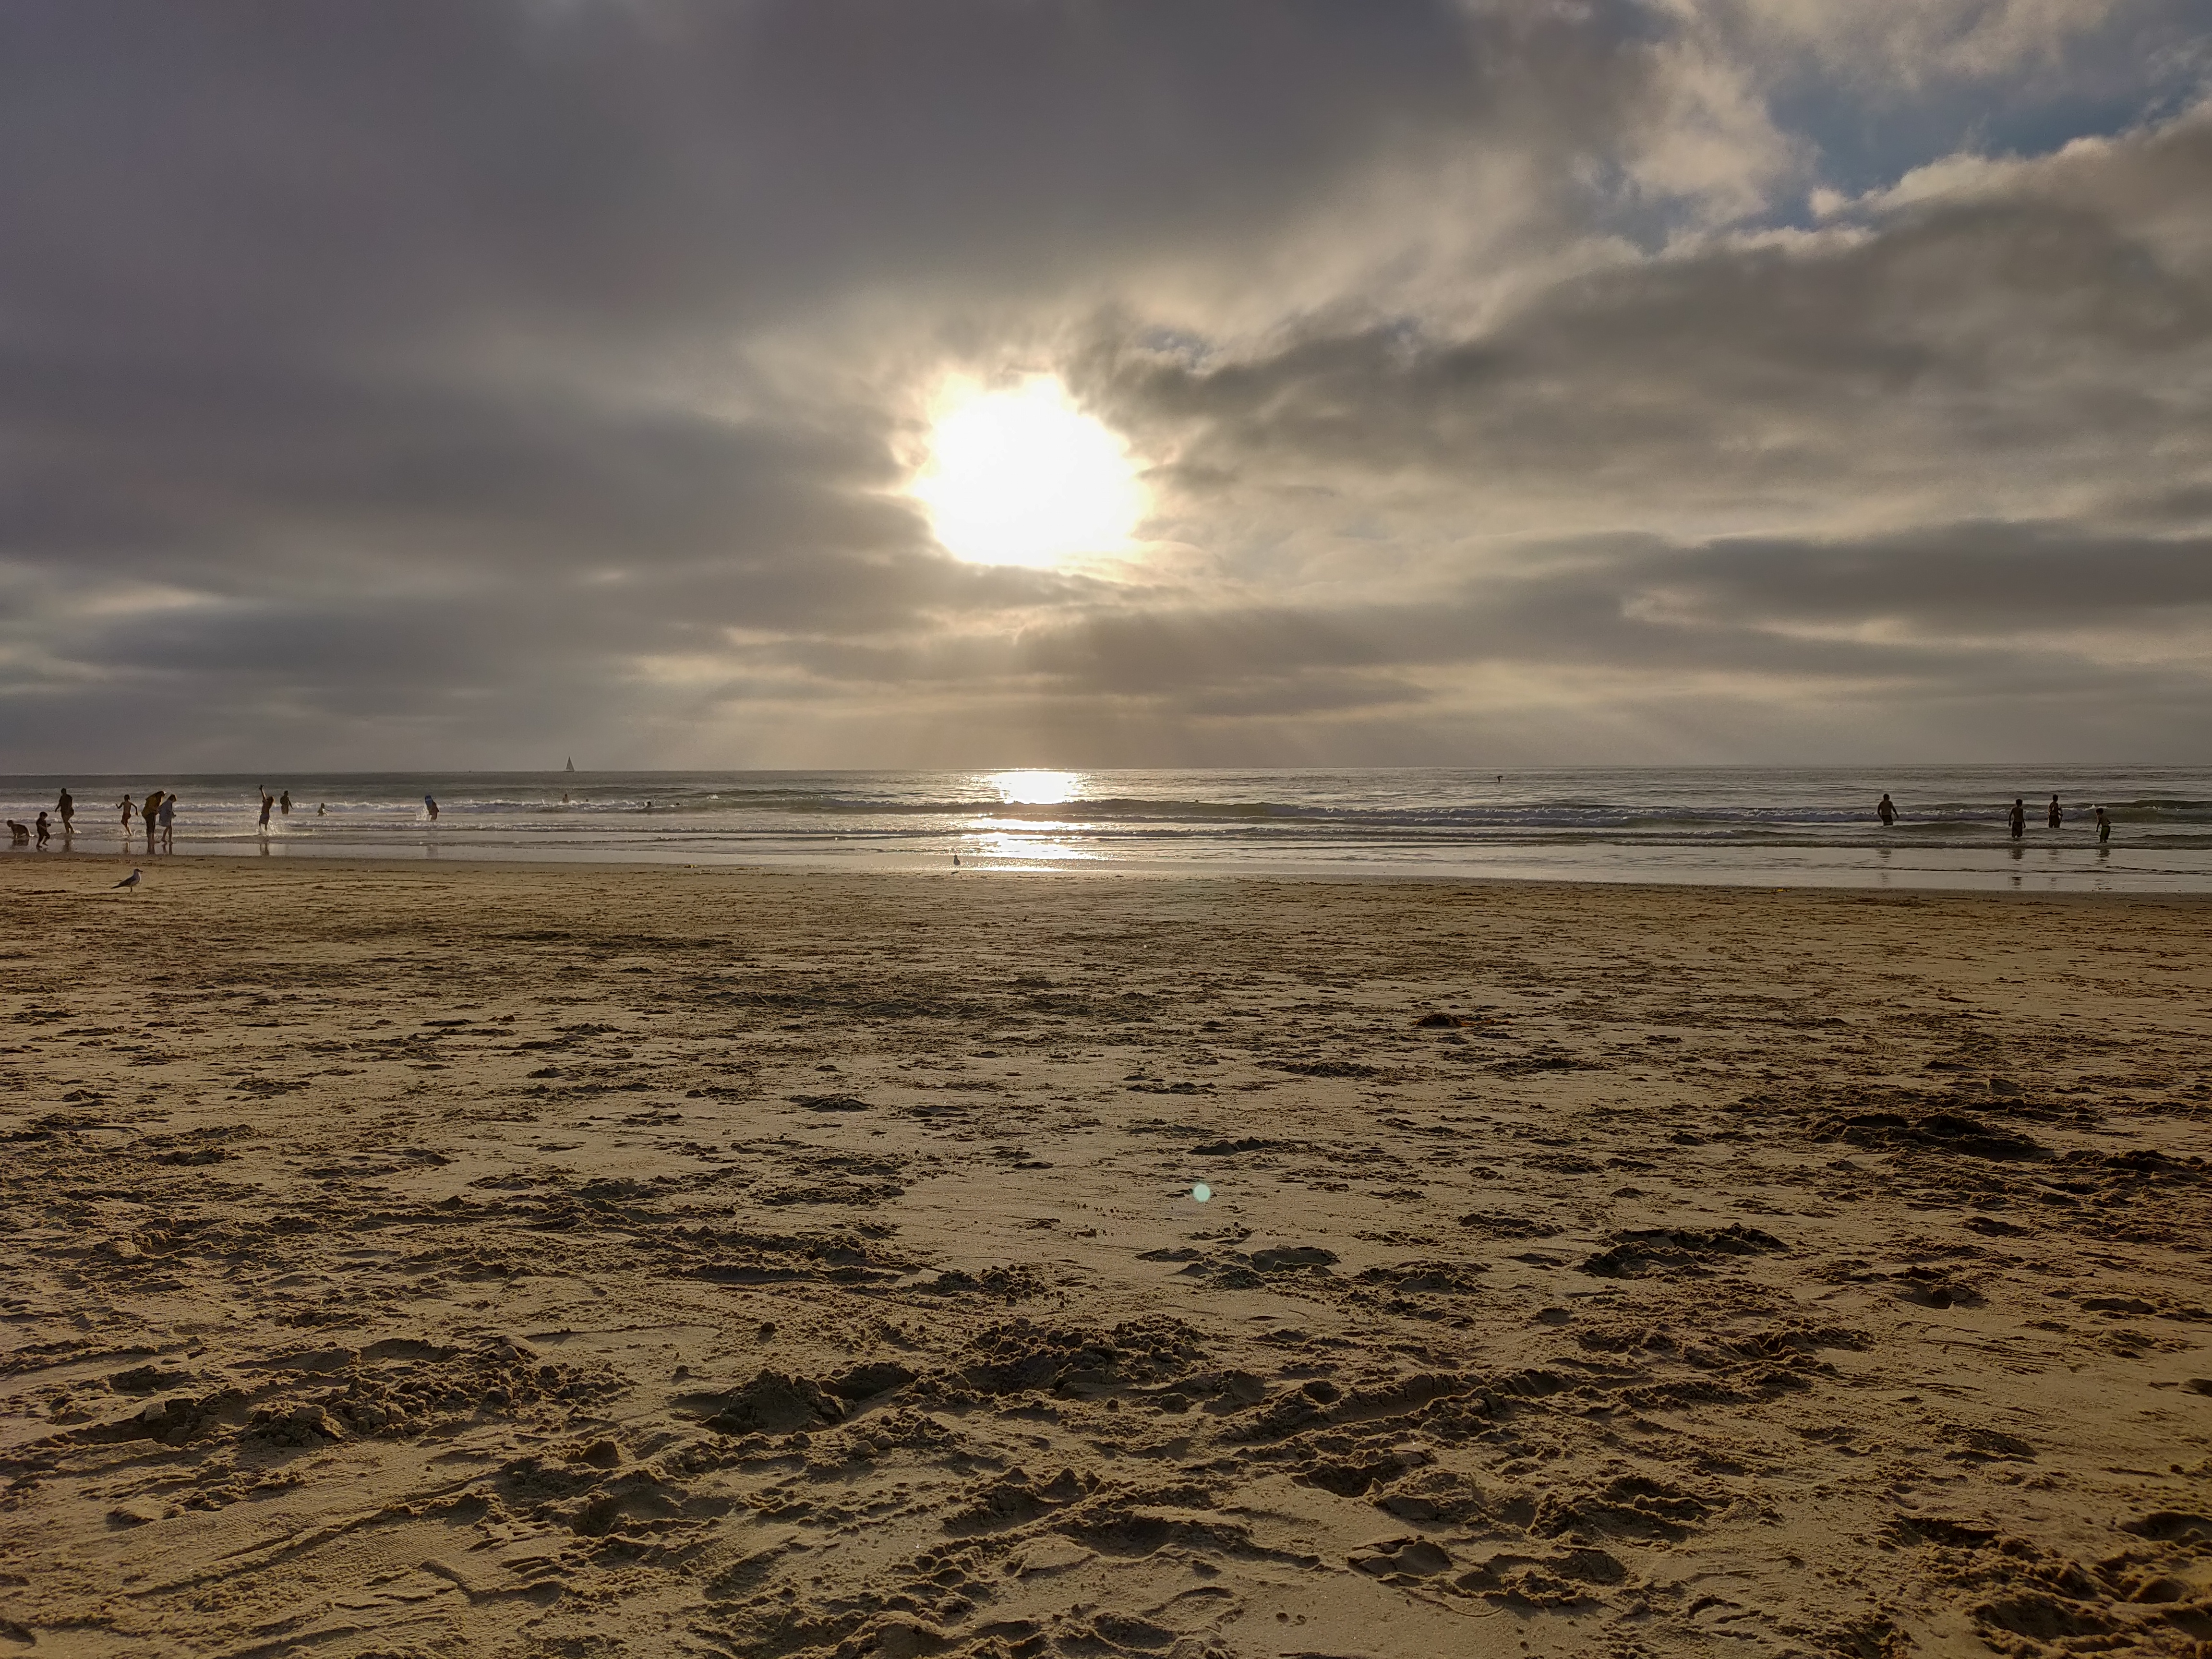 The Pacific Ocean at San Diego Mission Beach in the afternoon